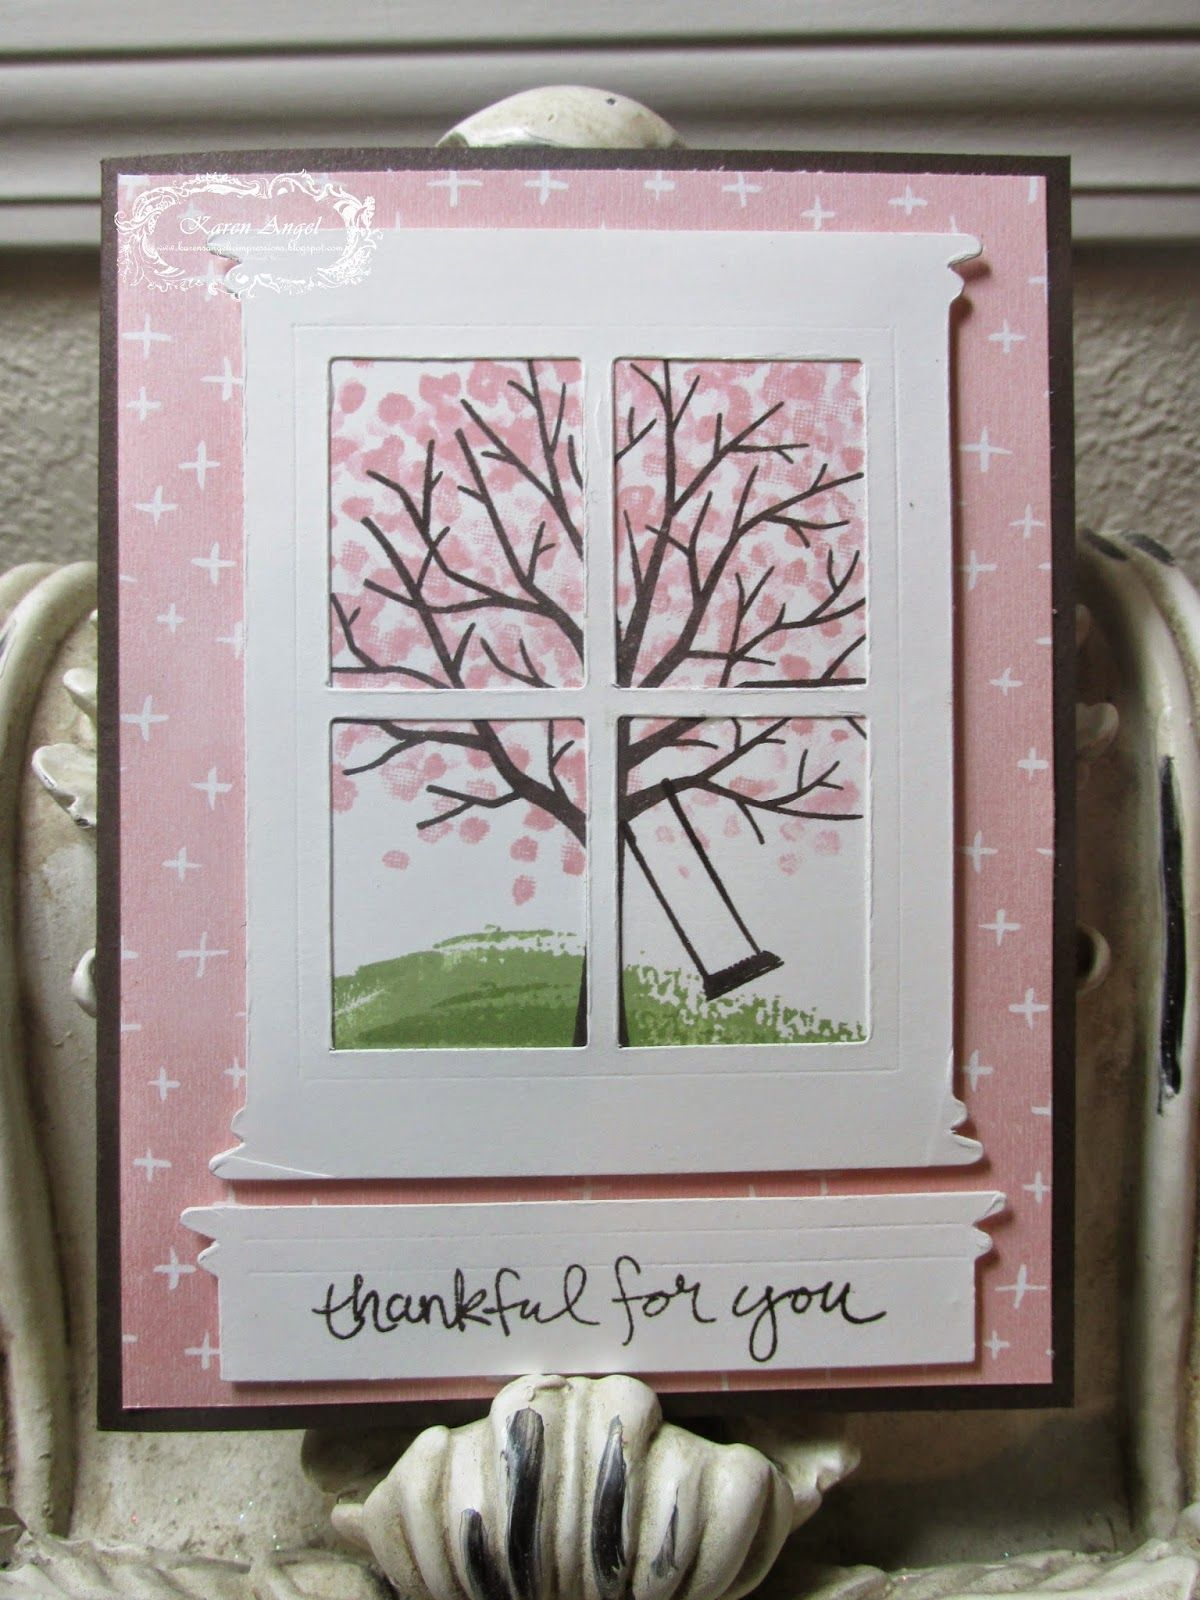 Karen's Angelic Impressions: Stamp with Karen April 13th (click here to view my blog)